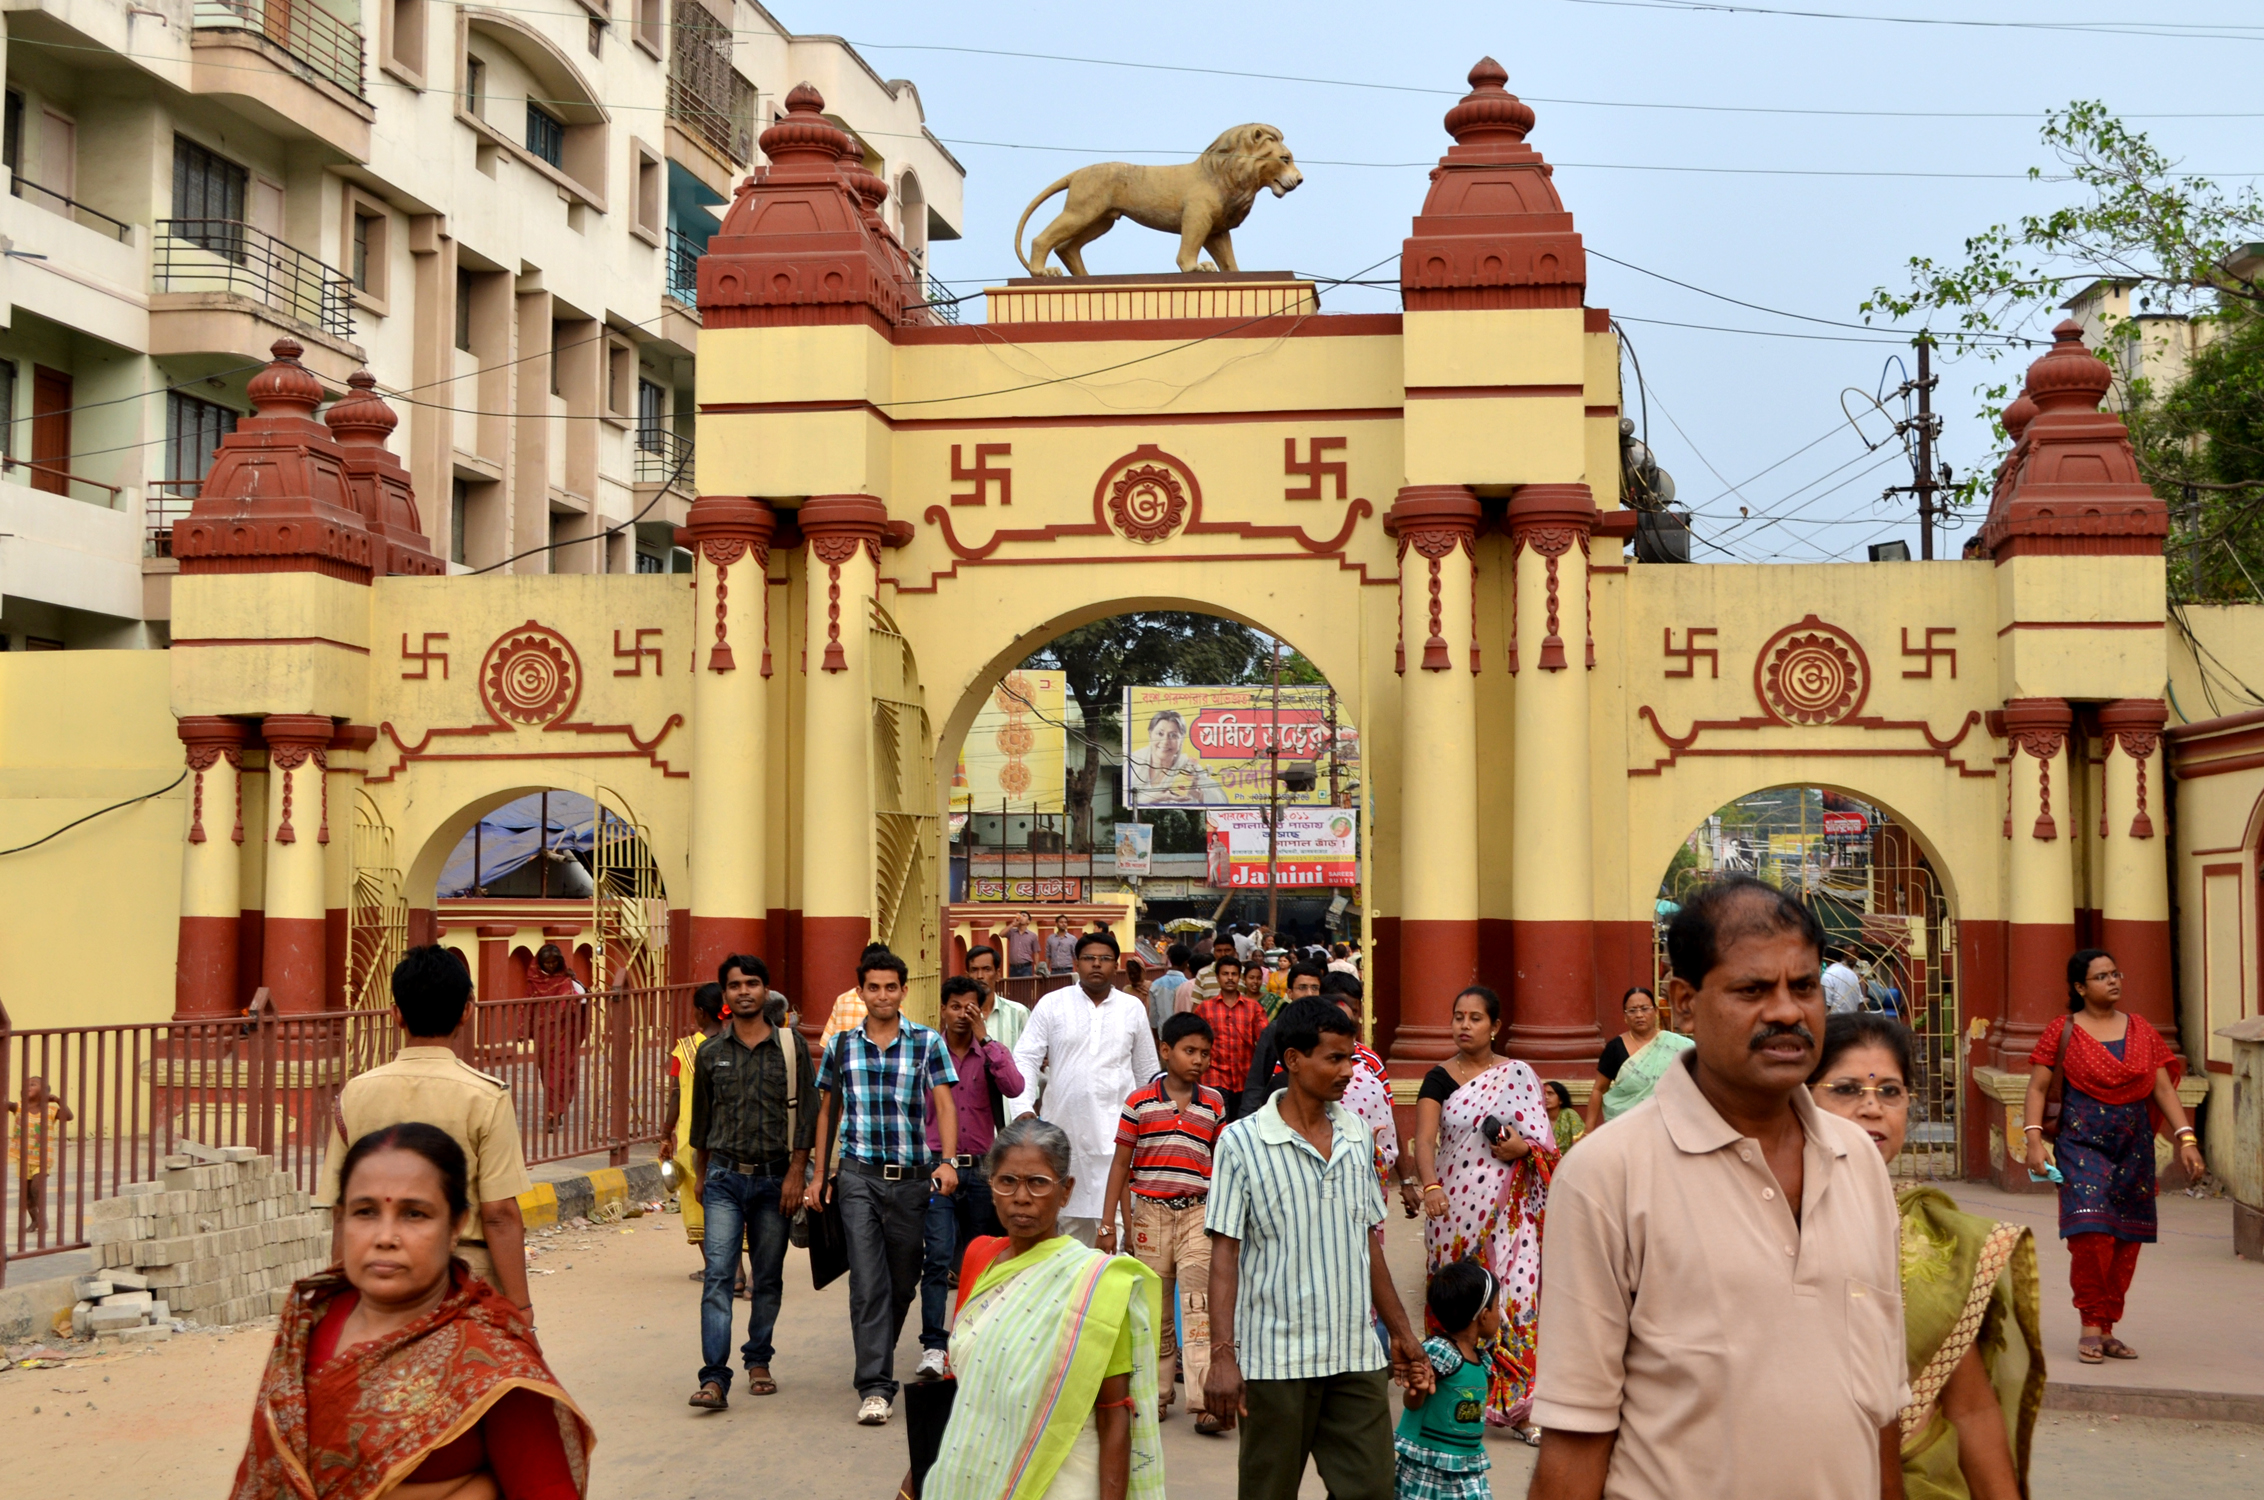 gates hindu singles Ganesh/janus, and the lost hindu/vedic secrets of christmas and new years eve during the months of december and january, much of the world observes the transition from one year to another it is no accident that christmas and the new year holiday celebration takes place in the last days of december and on the first day of january.